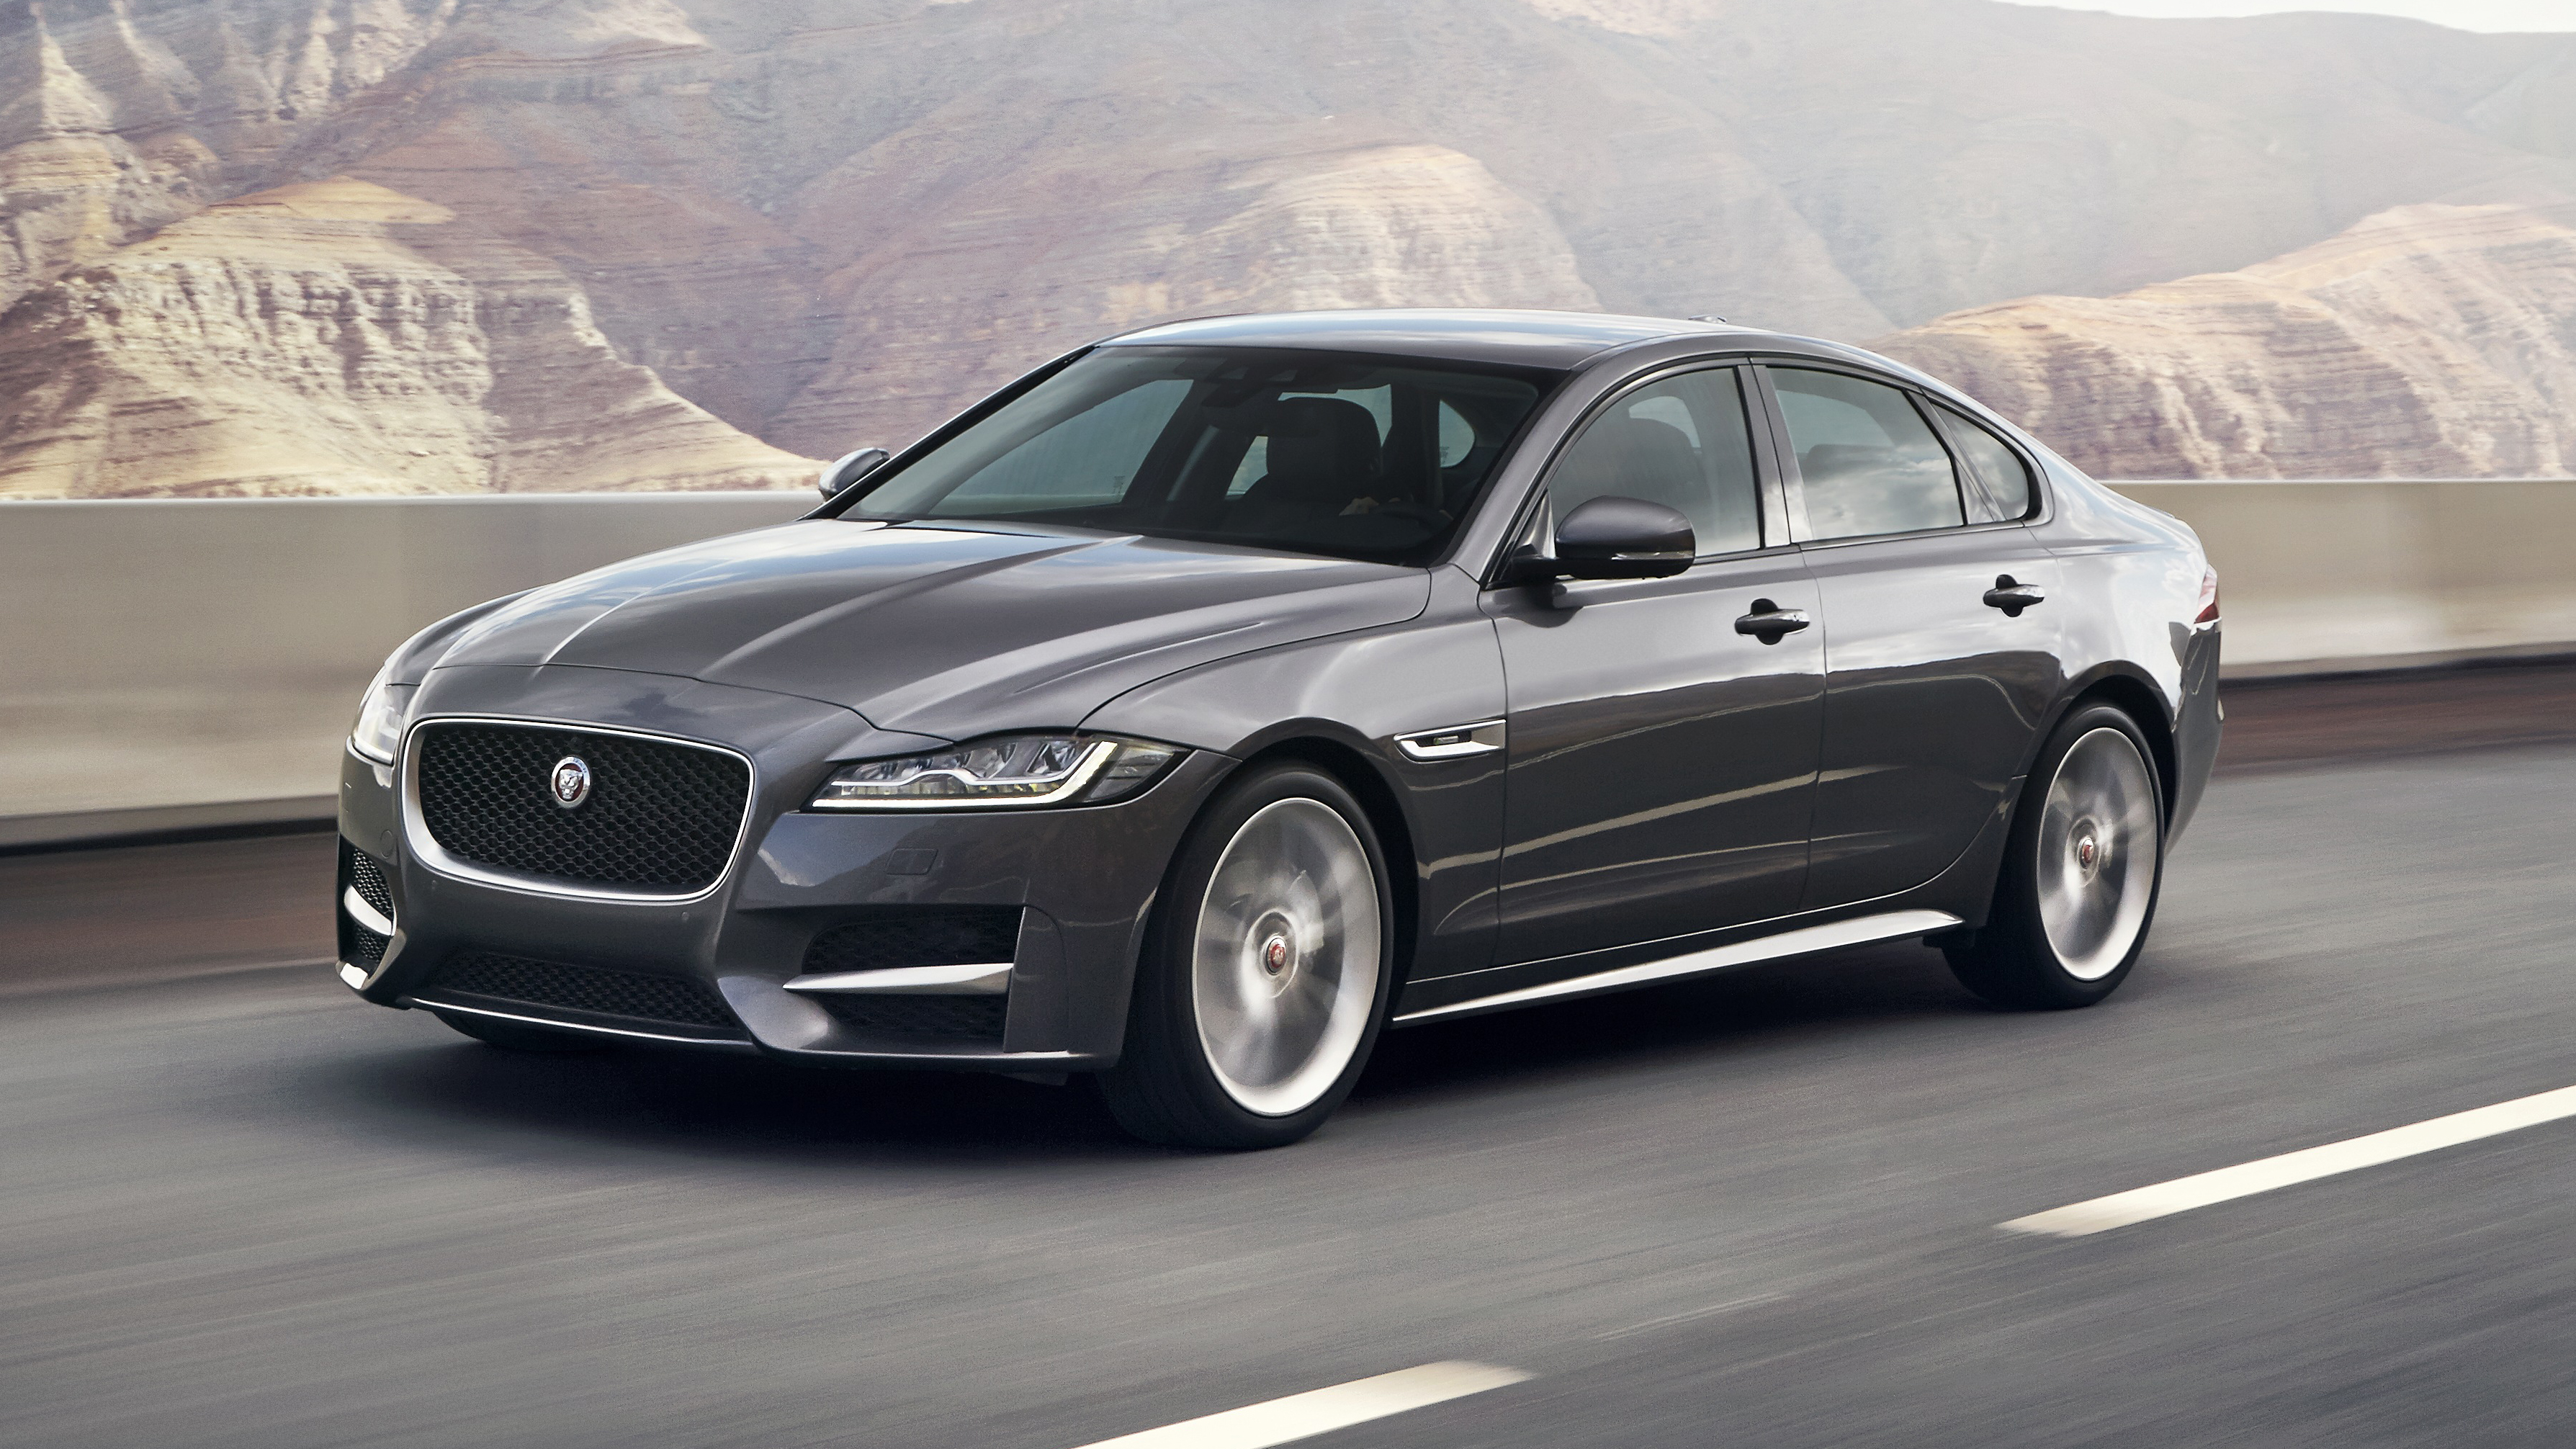 Jaguar XF review: first drive of Jag's executive saloon (2015-2018